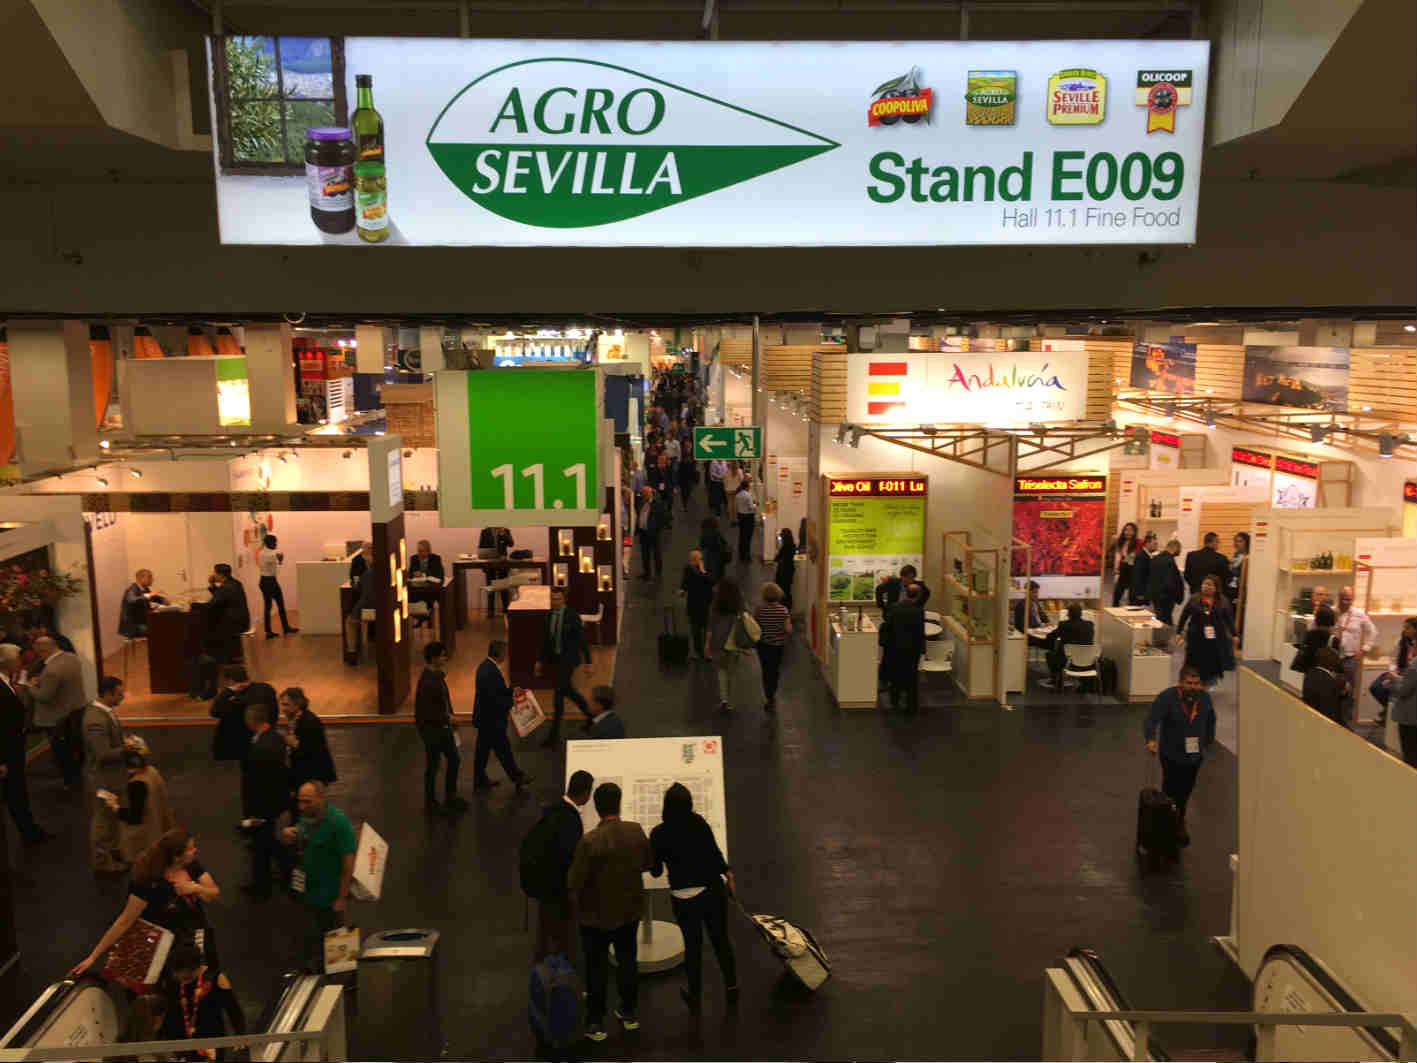 Agro Sevilla at the main food fairs in 2019